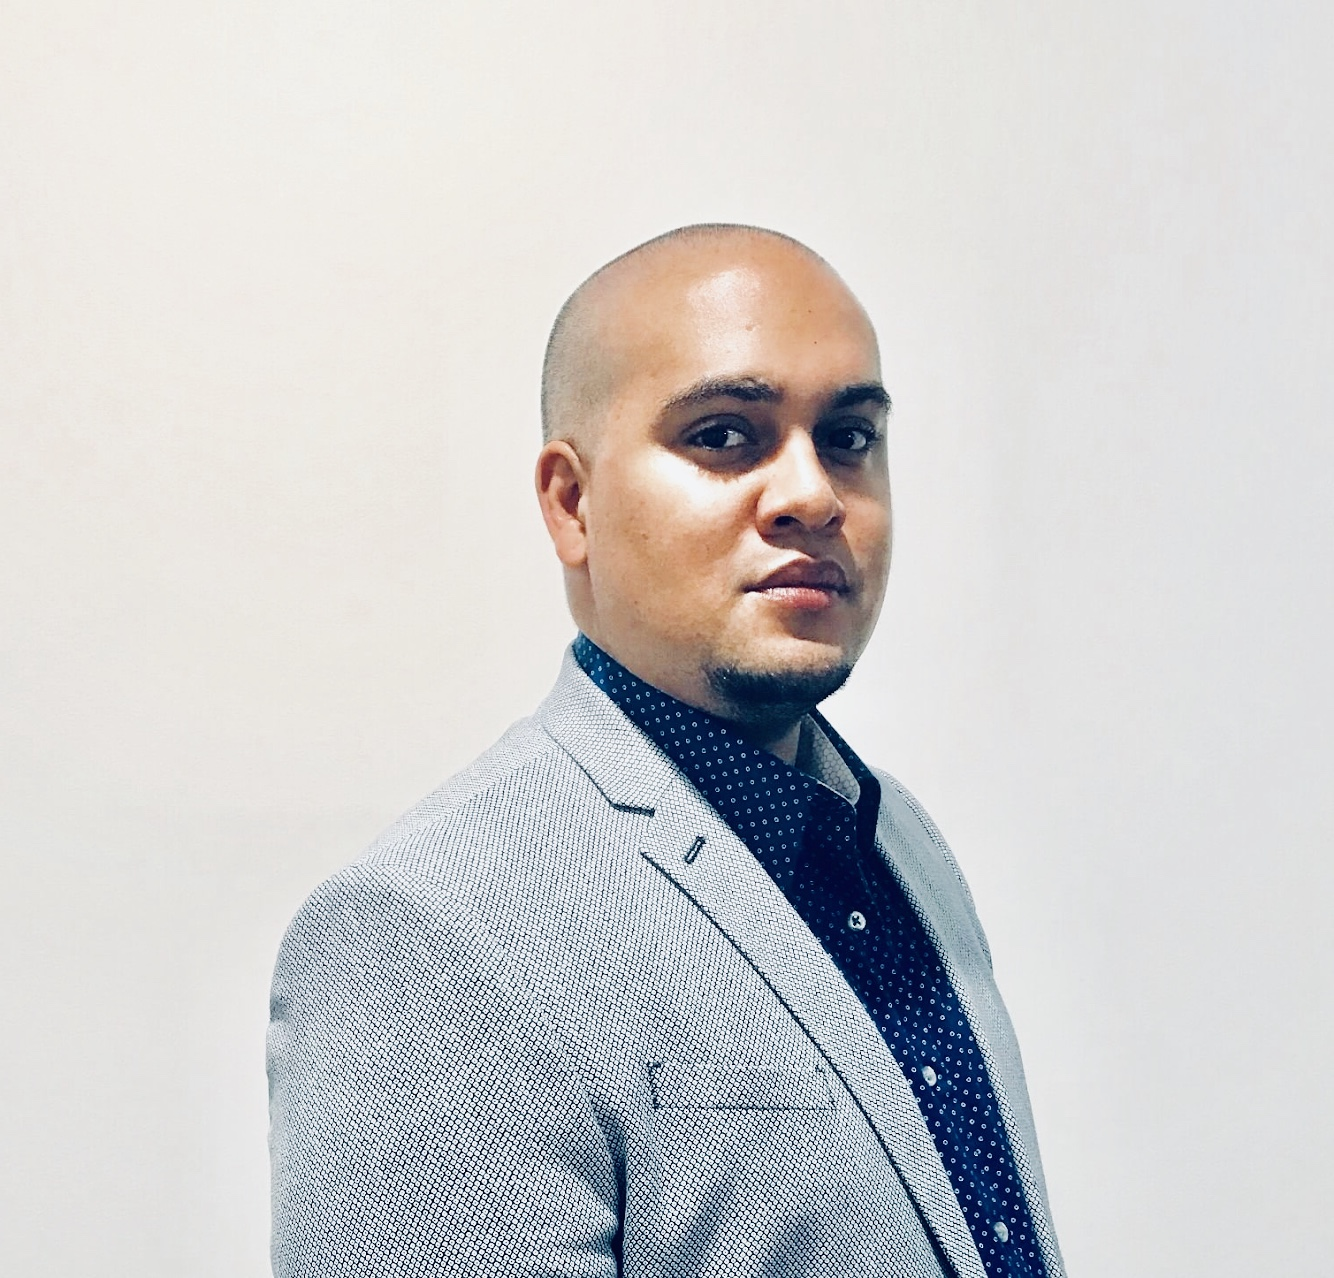 ERIK MICHAEL COLLINS - Erik has managed and overseen a number of digital marketing projects for corporate industry leaders, both locally and nationwide. These projects have varied in scope and include both complex IT and digital marketing designs.READ MORE >>